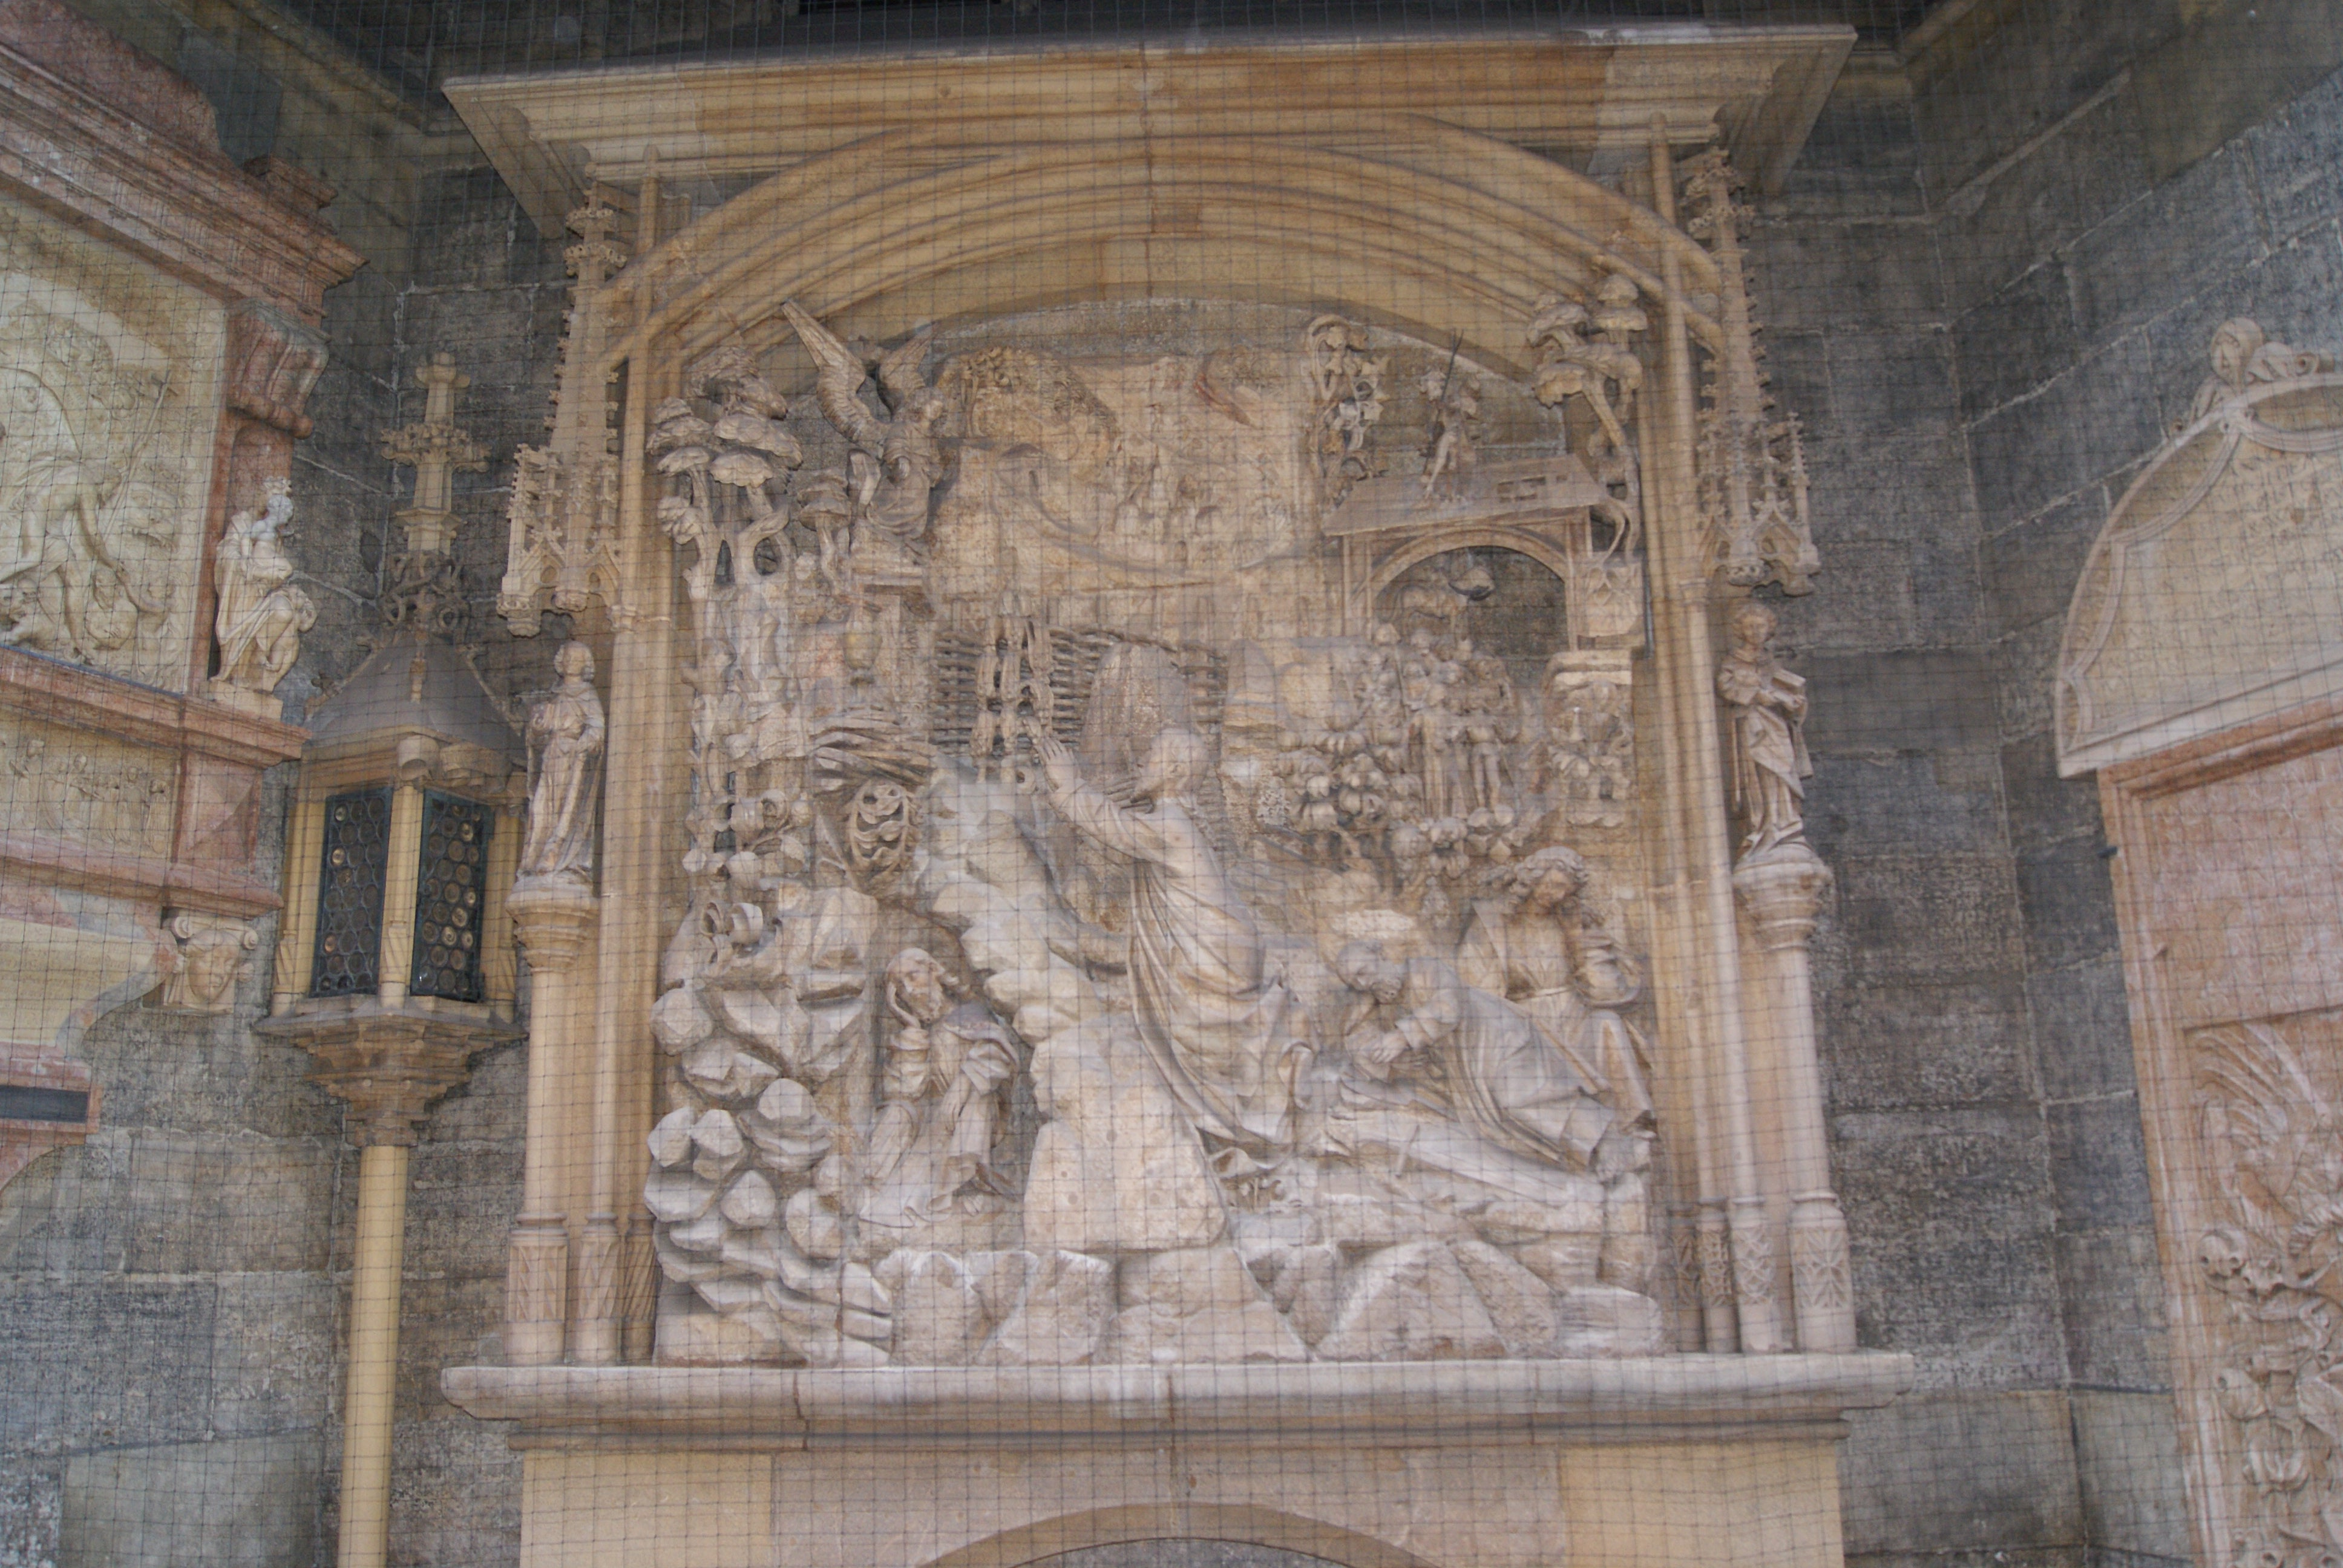 Relieve (escultura) en Catedral de San Esteban